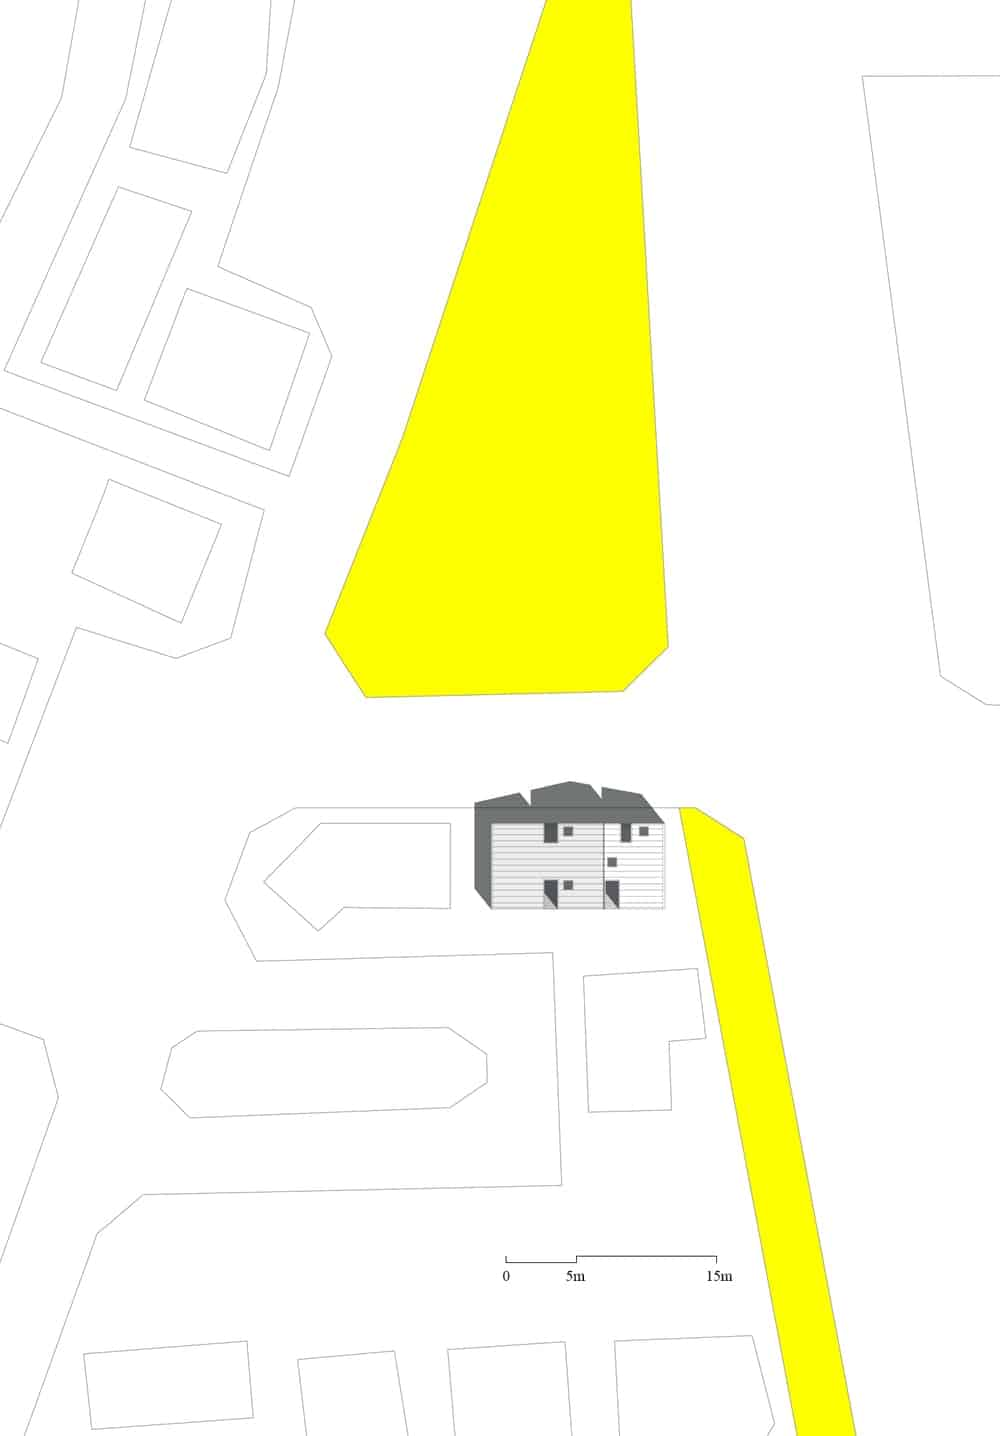 This is an illustrative representation of the site plan for the house.